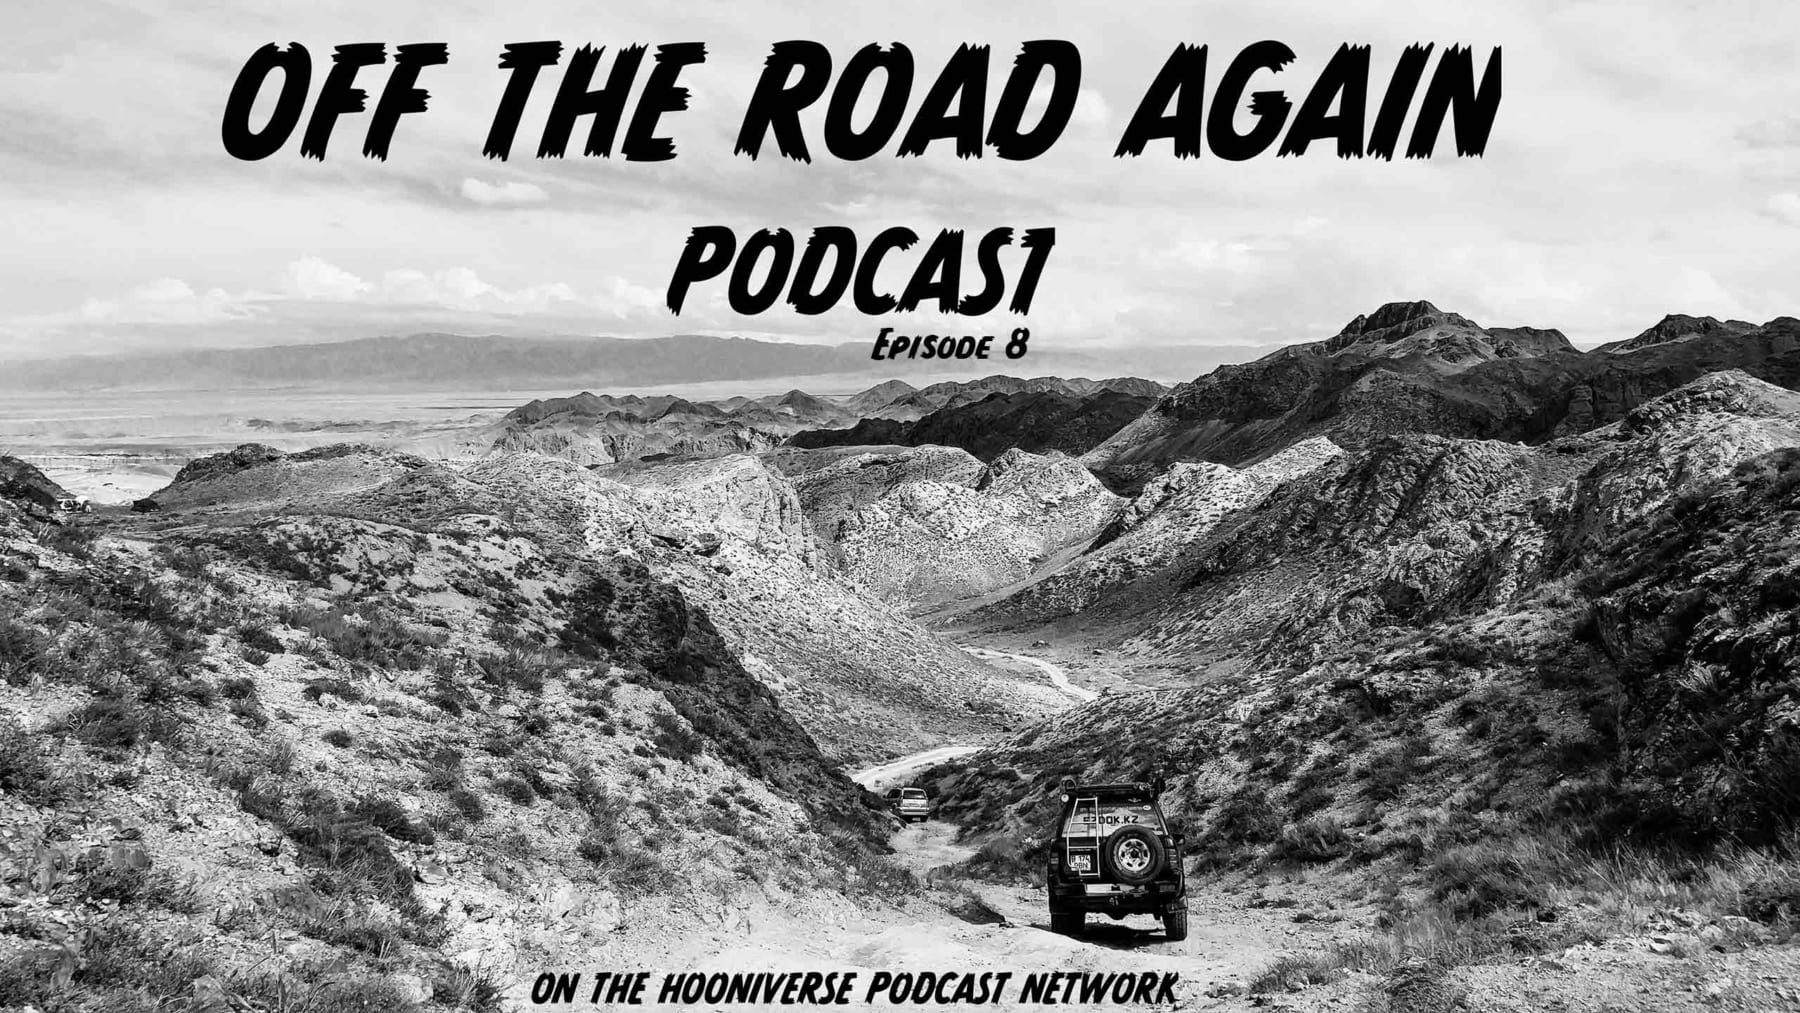 Off the Road Again Podcast: Episode 8